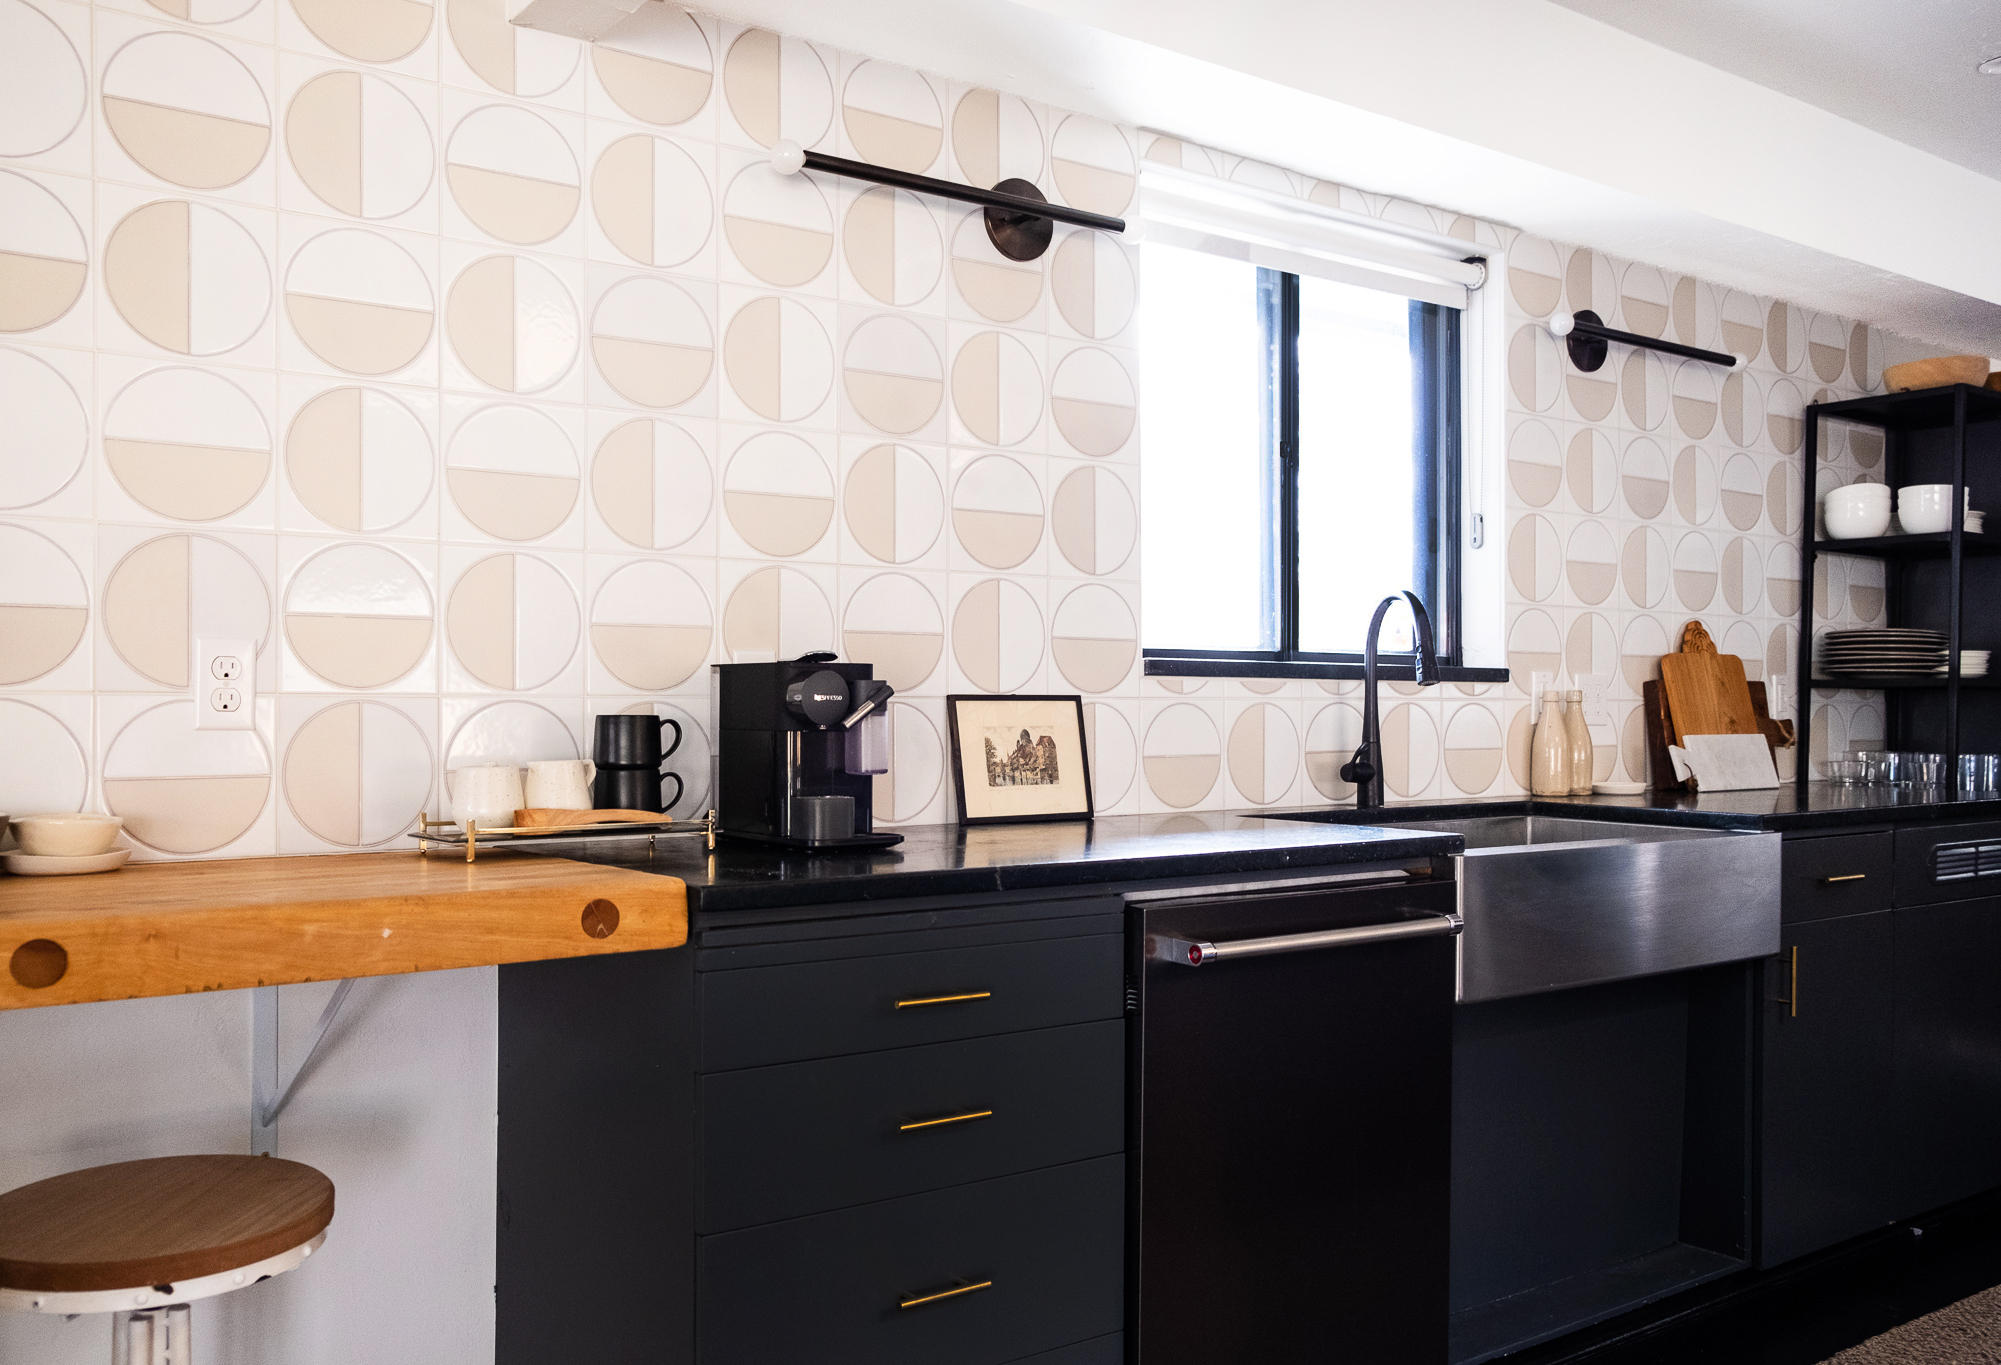 Kirsten Grove's kitchen features our handpainted Harvest tiles in White Motif